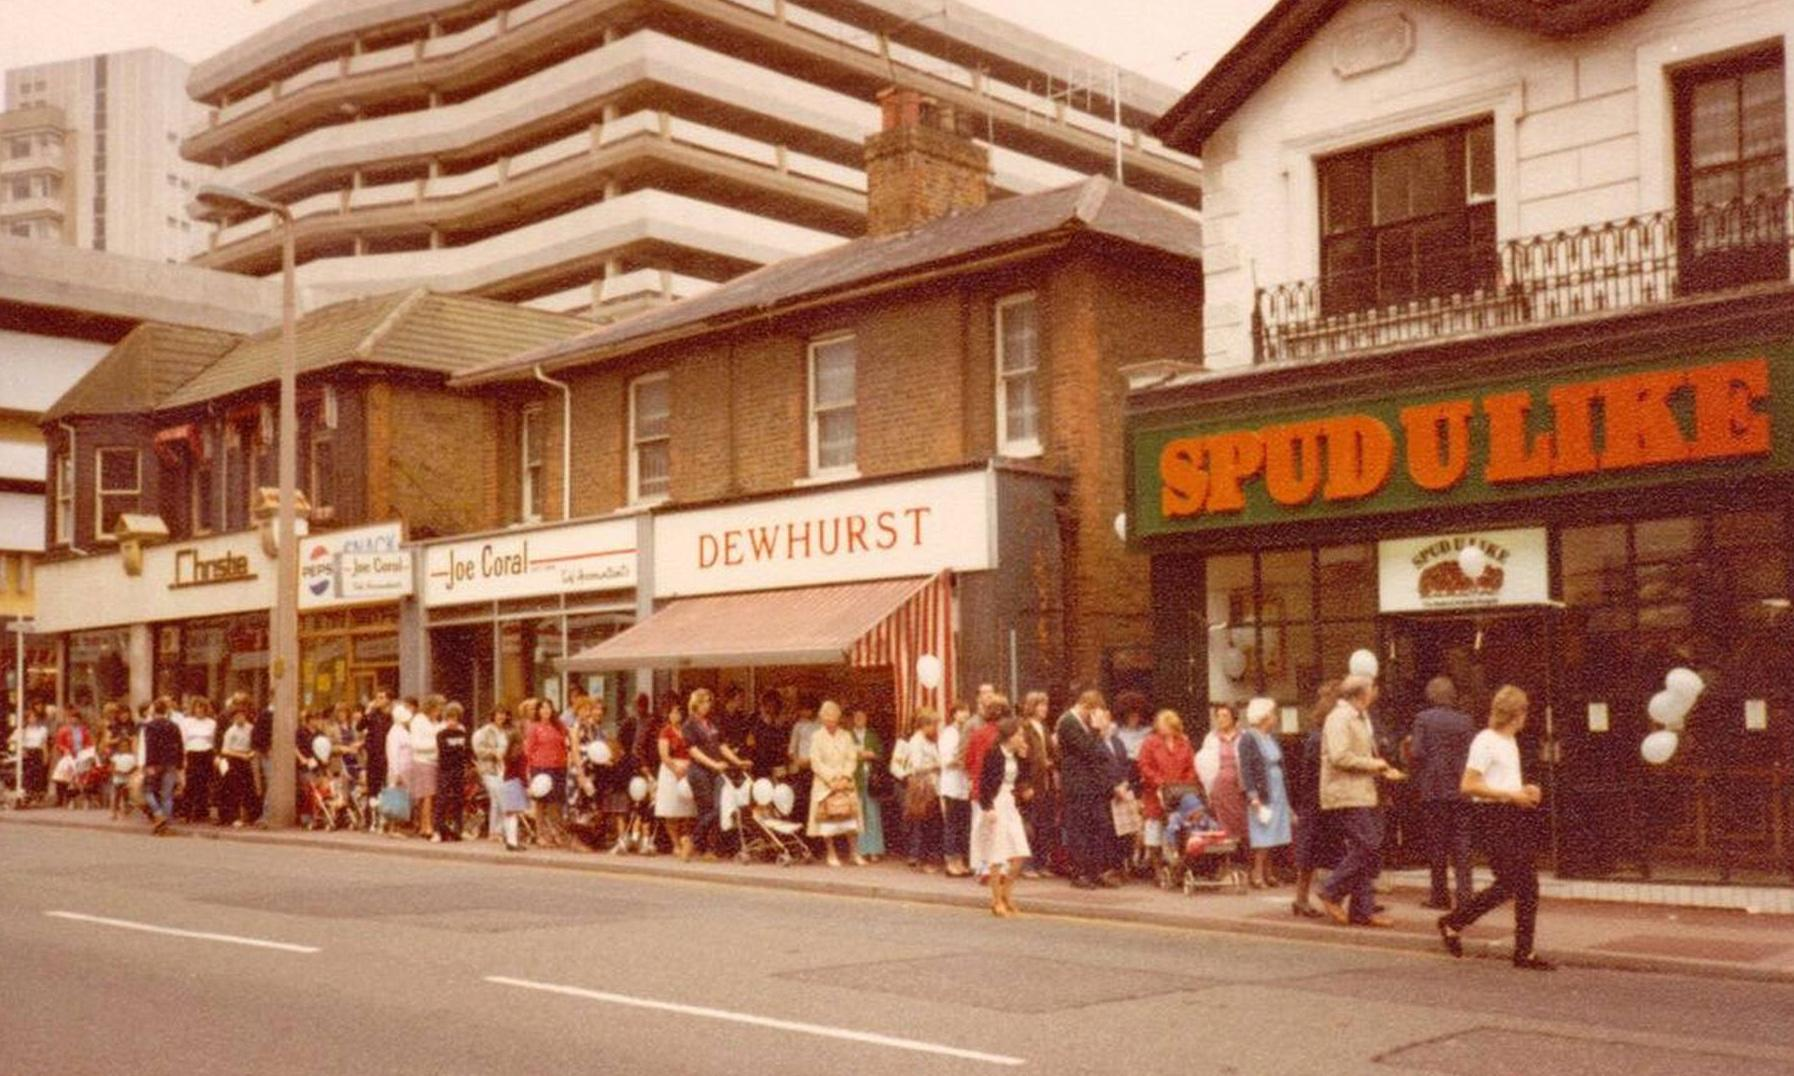 Spudulike closes all 37 outlets as high street downturn continues